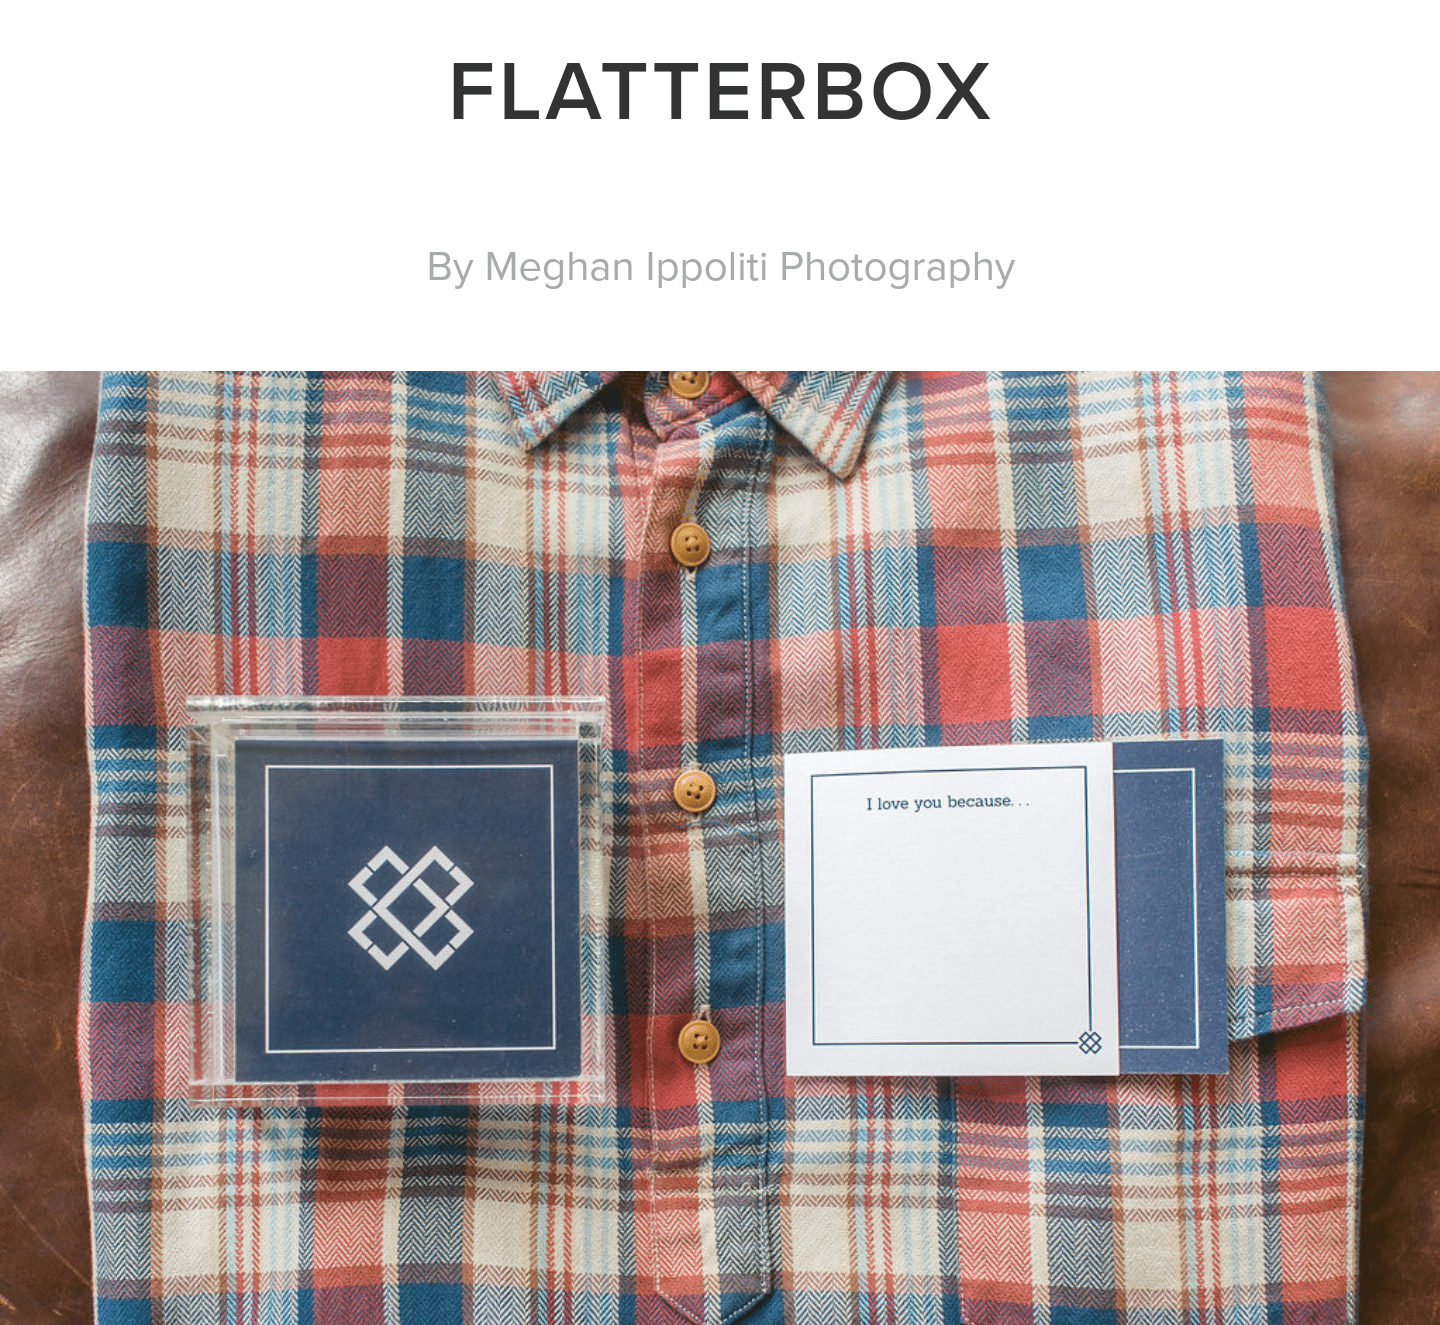 Flatterbox makes an awesome Father's Day gift (@flatterbox)